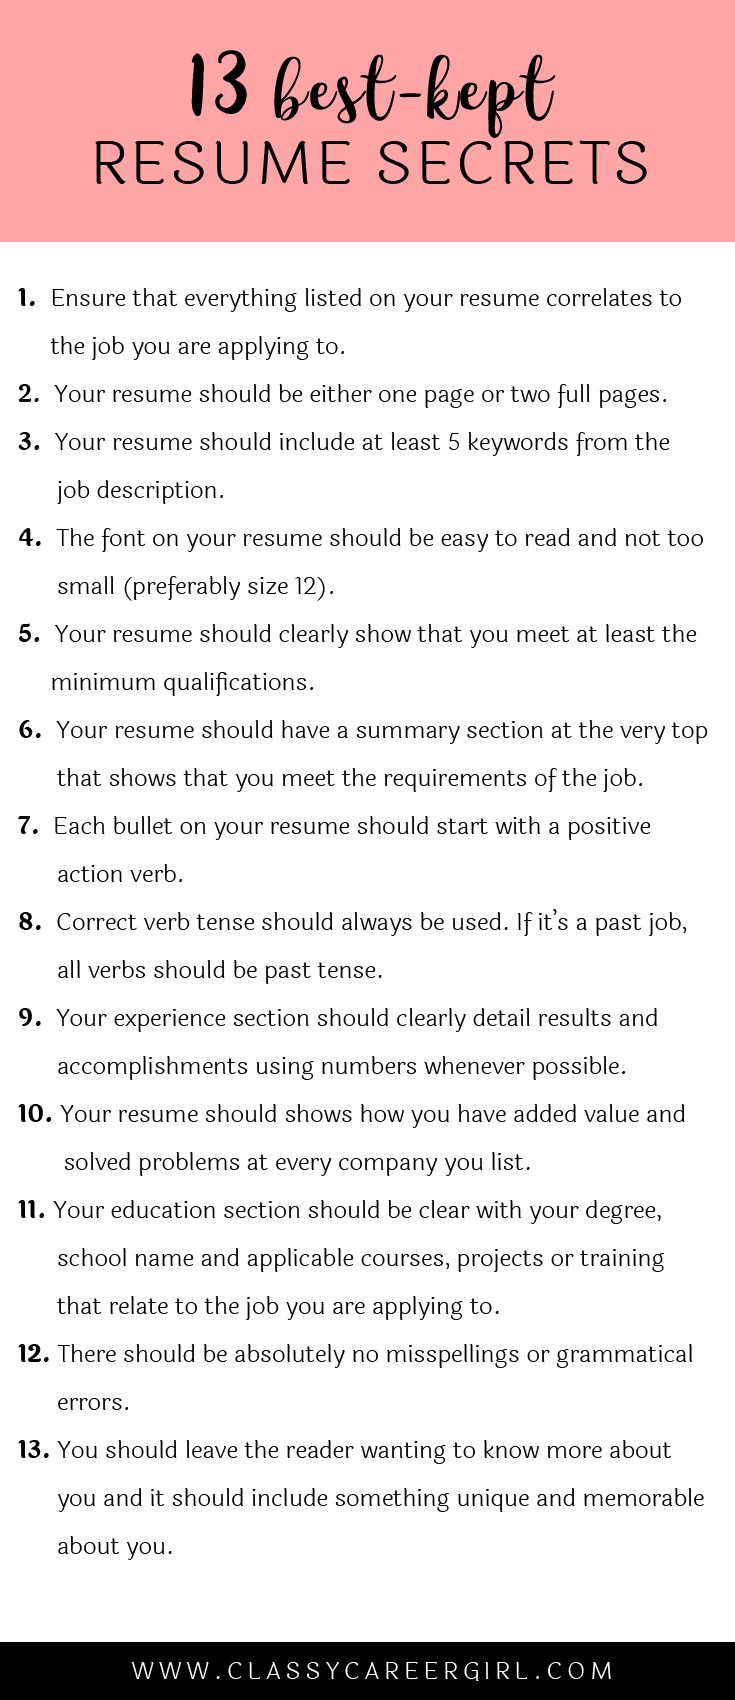 Opposenewapstandardsus  Fascinating  Ideas About Resume On Pinterest  Cv Format Resume Cv And  With Interesting Some Hiring Managers Will Toss Your Resume Out If You Dont Know These  With Amazing Absolutely Free Resume Also Network Admin Resume In Addition Word Template For Resume And Mac Pages Resume Templates As Well As Paralegal Resume Skills Additionally Blank Resume To Fill Out From Pinterestcom With Opposenewapstandardsus  Interesting  Ideas About Resume On Pinterest  Cv Format Resume Cv And  With Amazing Some Hiring Managers Will Toss Your Resume Out If You Dont Know These  And Fascinating Absolutely Free Resume Also Network Admin Resume In Addition Word Template For Resume From Pinterestcom